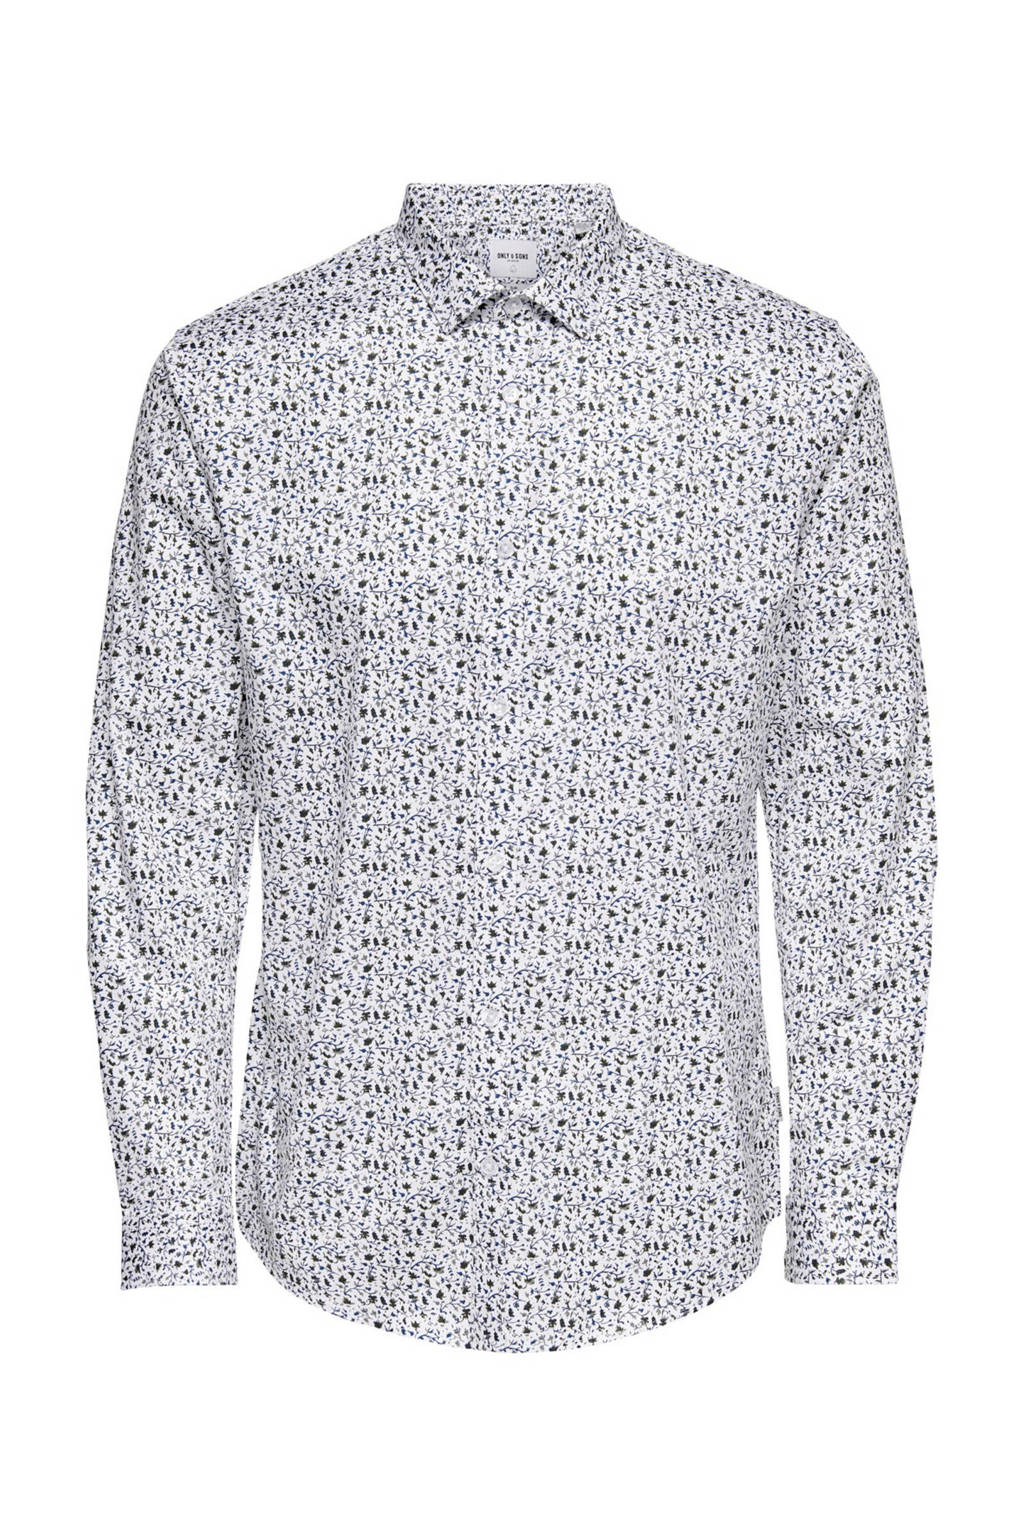 ONLY & SONS slim fit overhemd met all over print wit/blauw, Wit/blauw